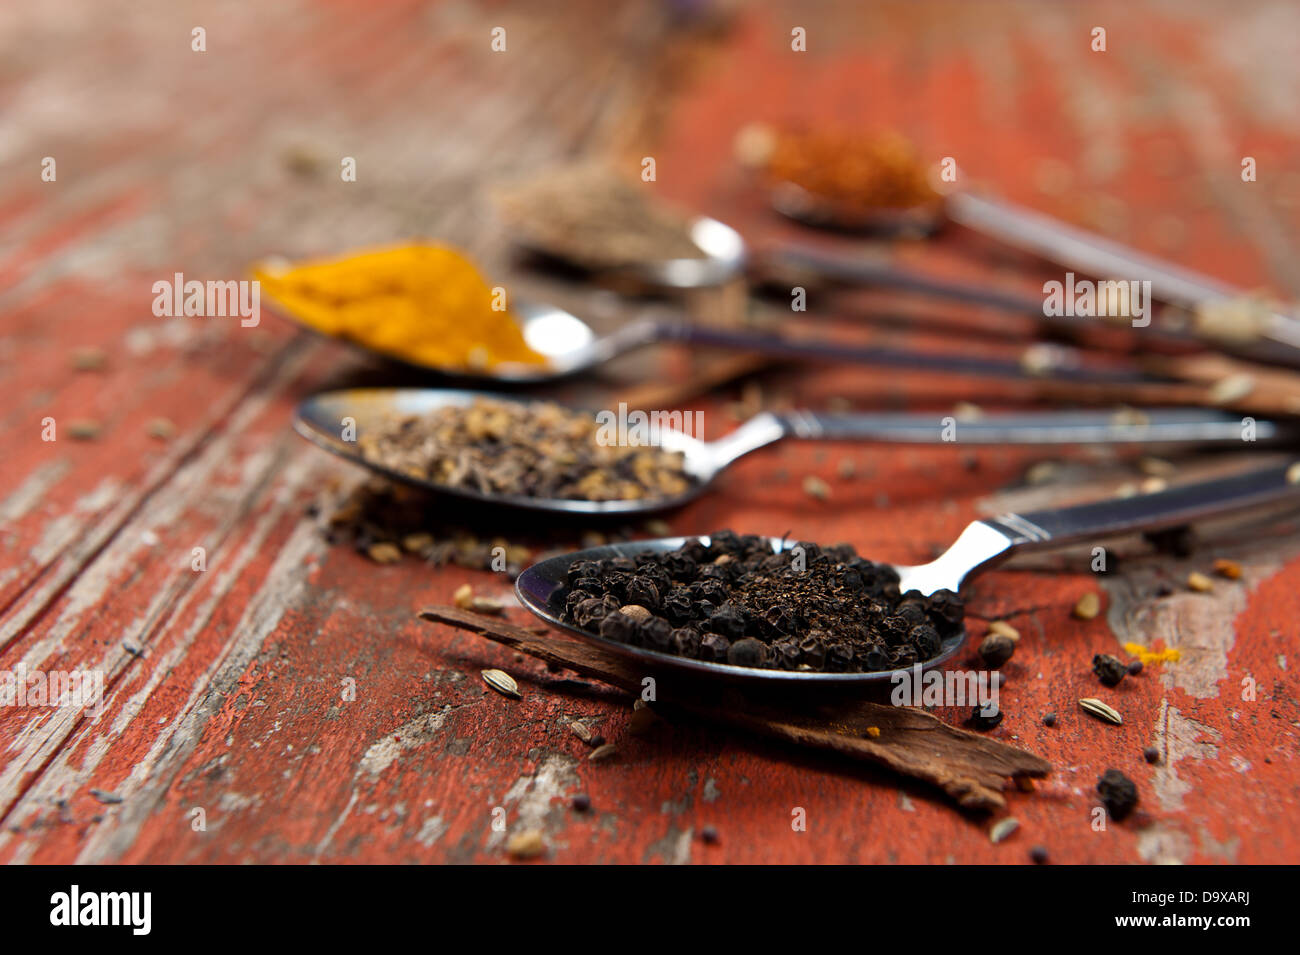 Table spoons heaped with different spices on an orange textured wooden surface. Artistic use of shallow depth of - Stock Image